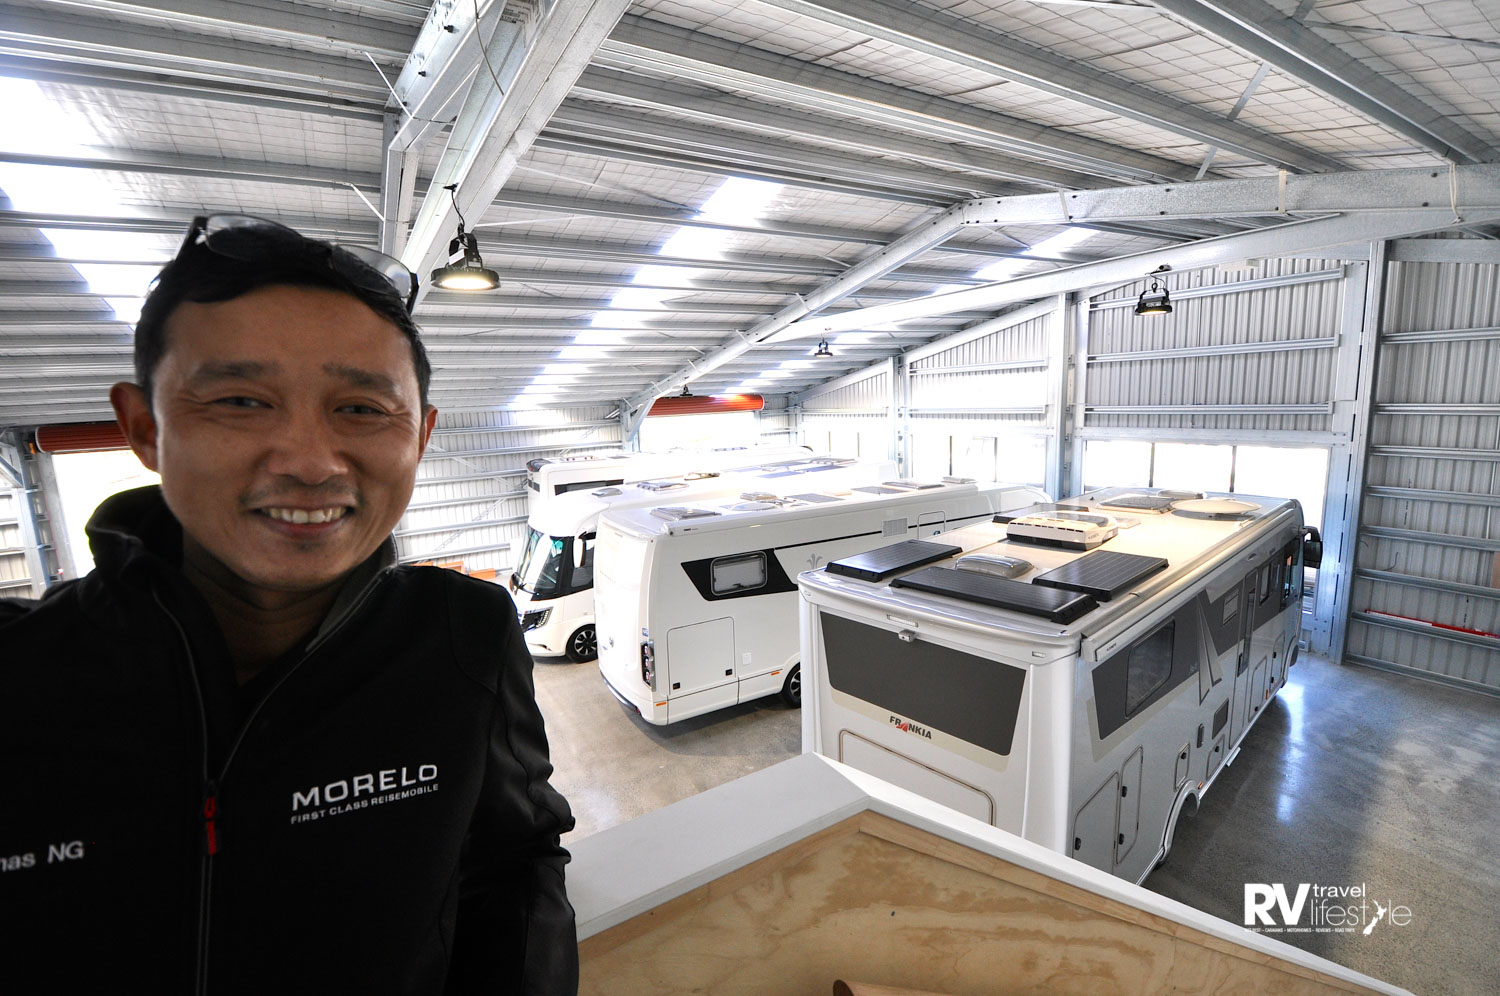 Jonas Ng from Zion Motorhomes, very happy to see the big Frankia, Morello and Nieshman+Bischoff motorhomes being driven into the showroom